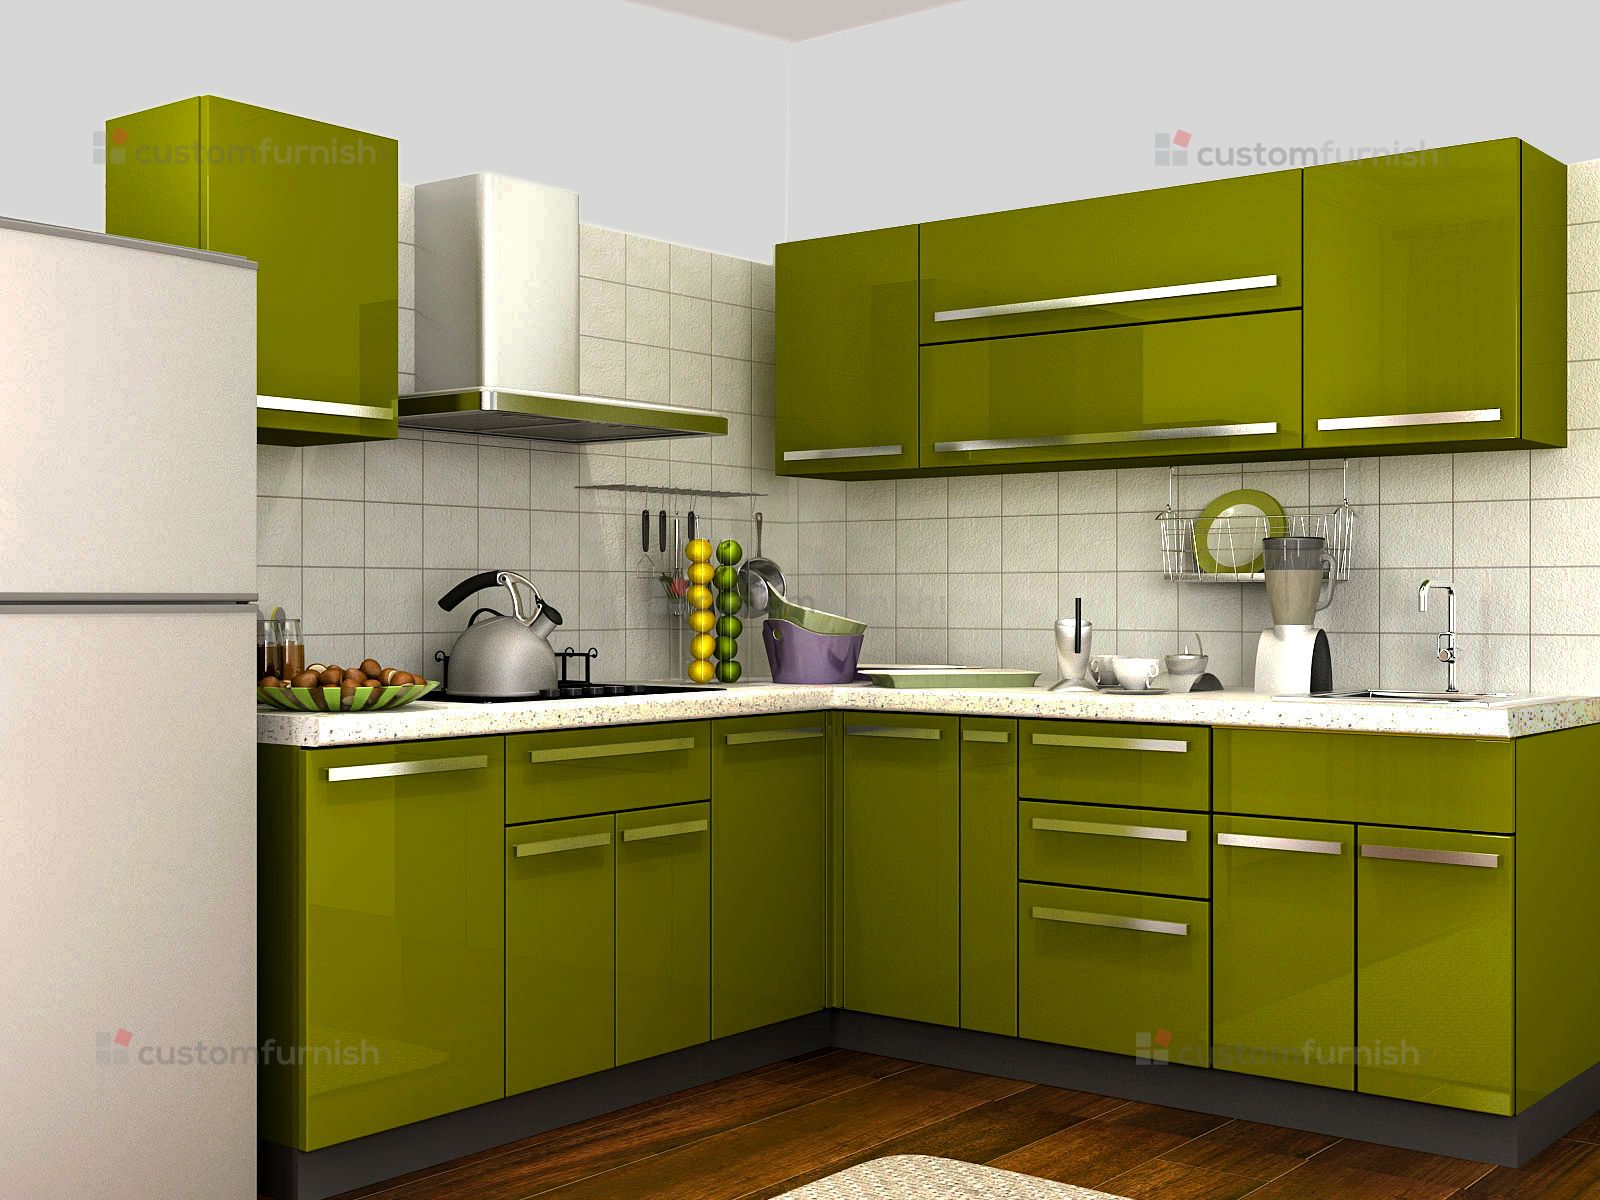 More Ideas Below Kitchenremodel Kitchenideas Indian Modular Kitchen Ideas Small Modula Kitchen Furniture Design Kitchen Room Design L Shaped Modular Kitchen